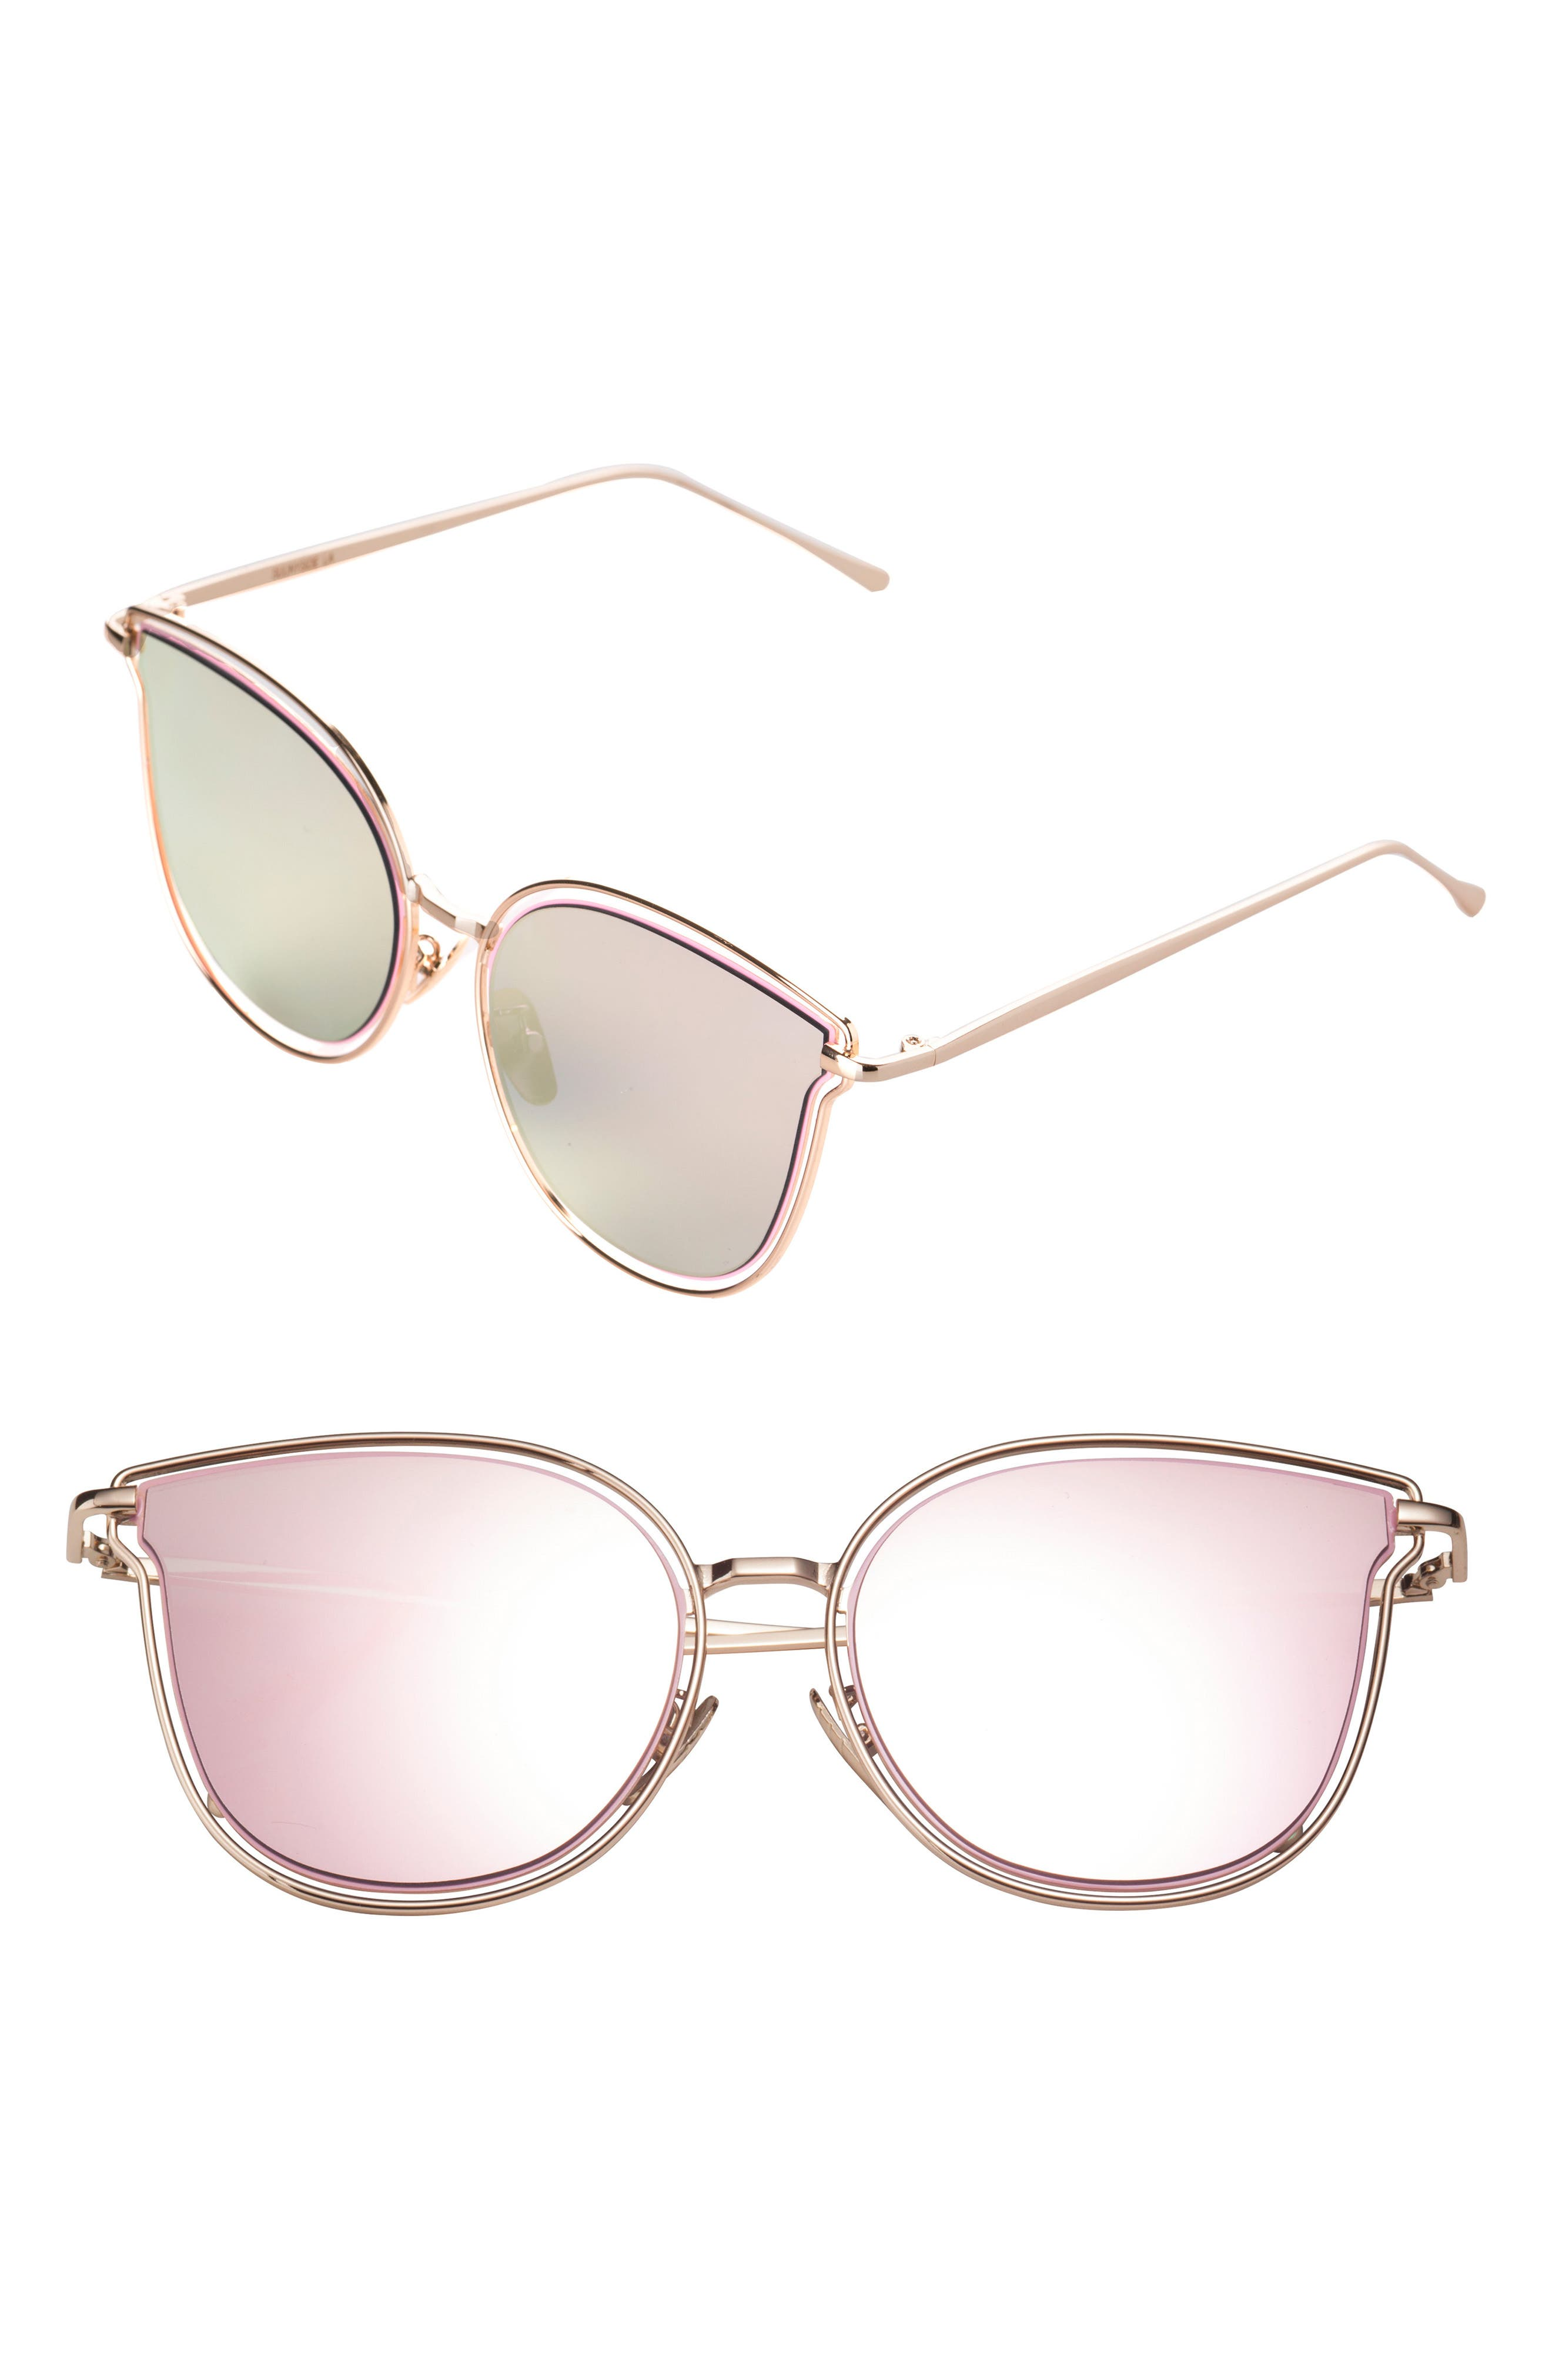 54mm Mirrored Cat Eye Sunglasses,                             Main thumbnail 1, color,                             PINK/ GOLD